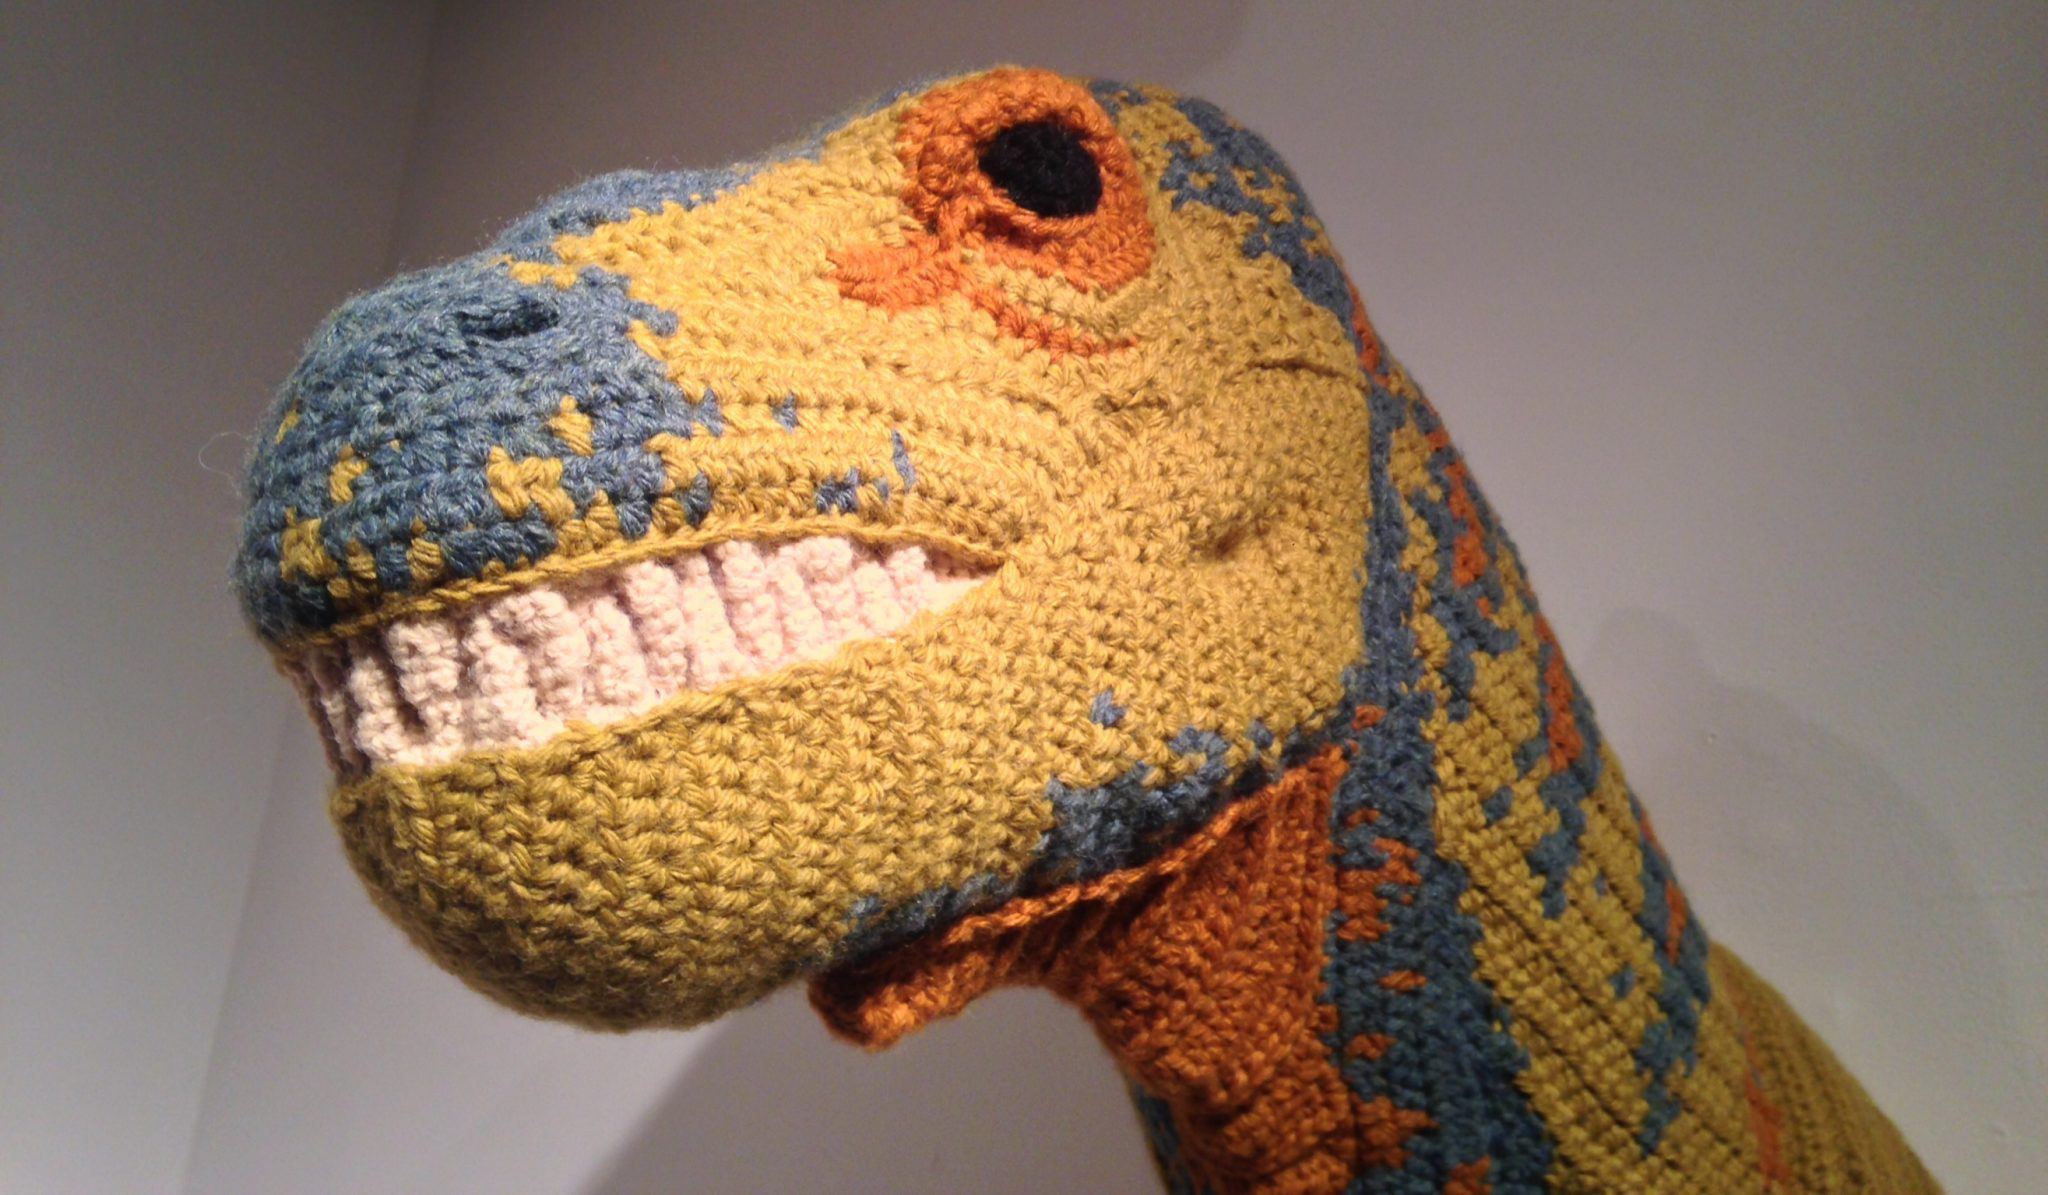 Crochet Videos Inspirational A Look at the Crochet Art by Nathan Vincent Of Unique 50 Models Crochet Videos